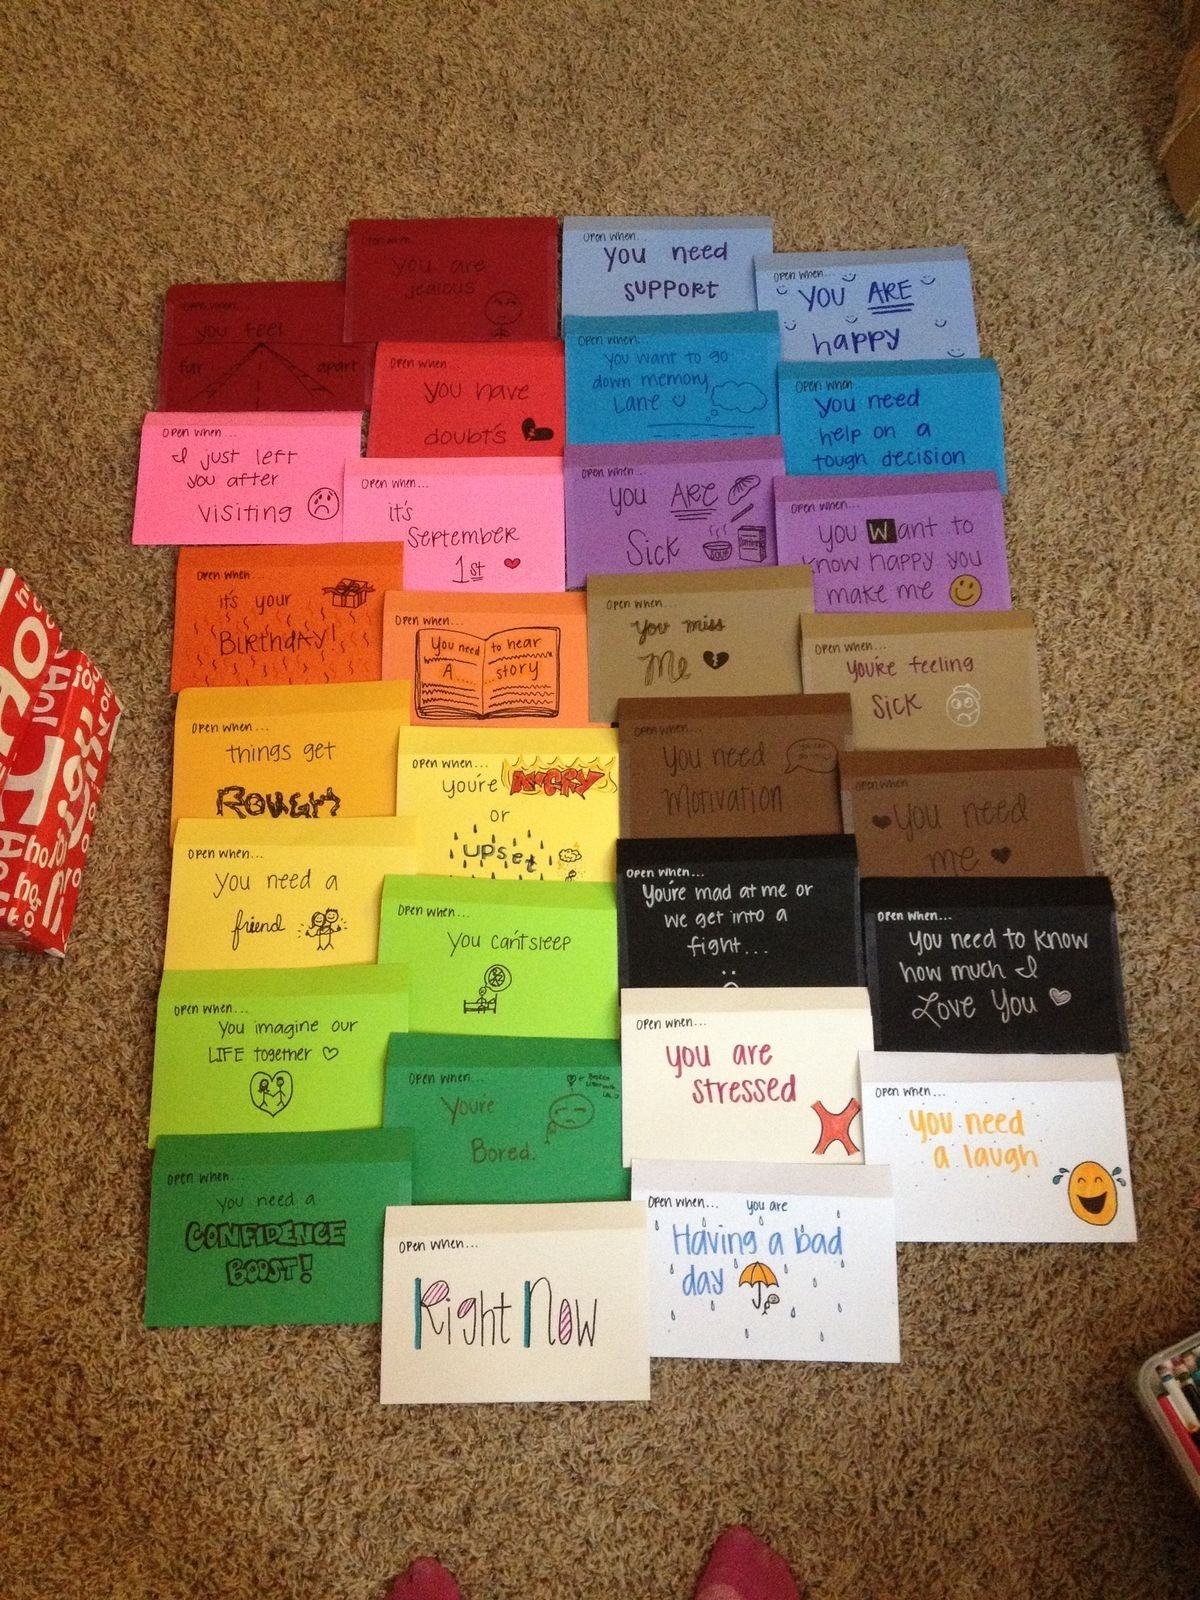 10 Stunning Long Distance Relationship Gift Ideas 35 Inspiring Open When Letters Madeyou Relationships And